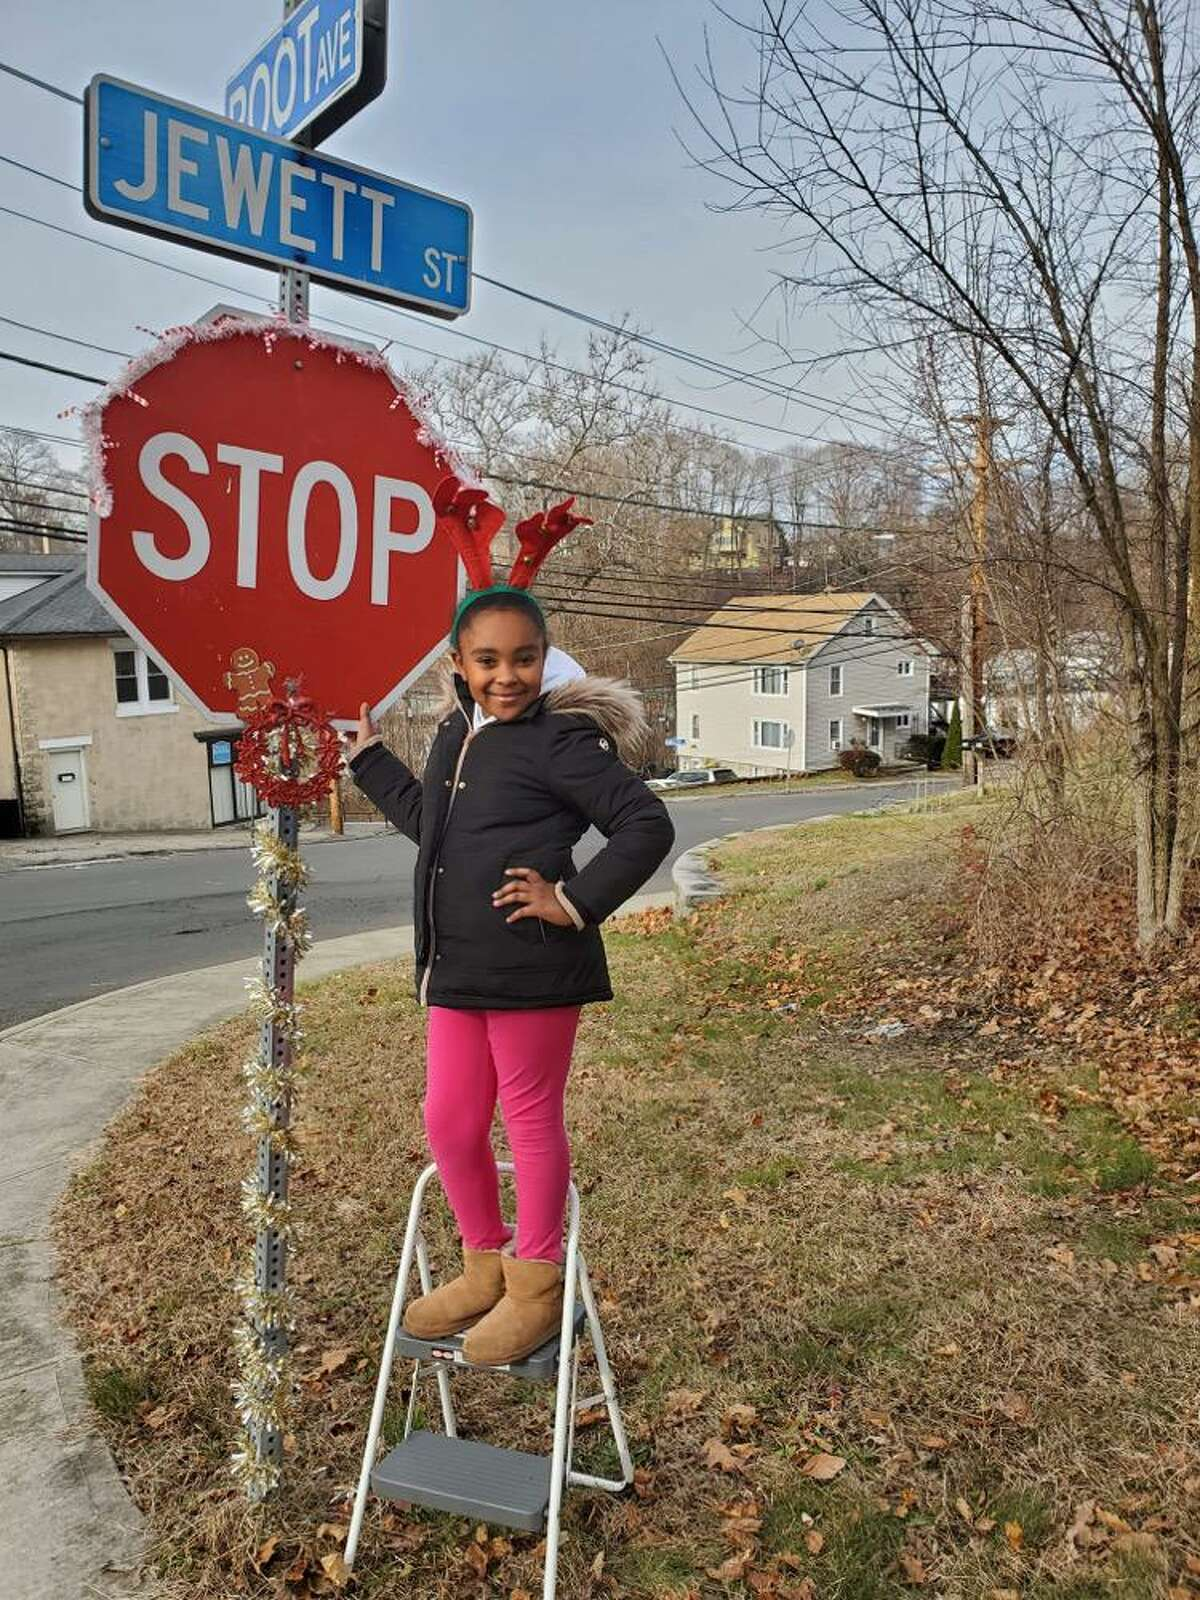 Morgan Hughes stands next to the stop sign she and her mother Keisha Martin-Velez decorated at the intersection of Jewett Street and Root Ave.